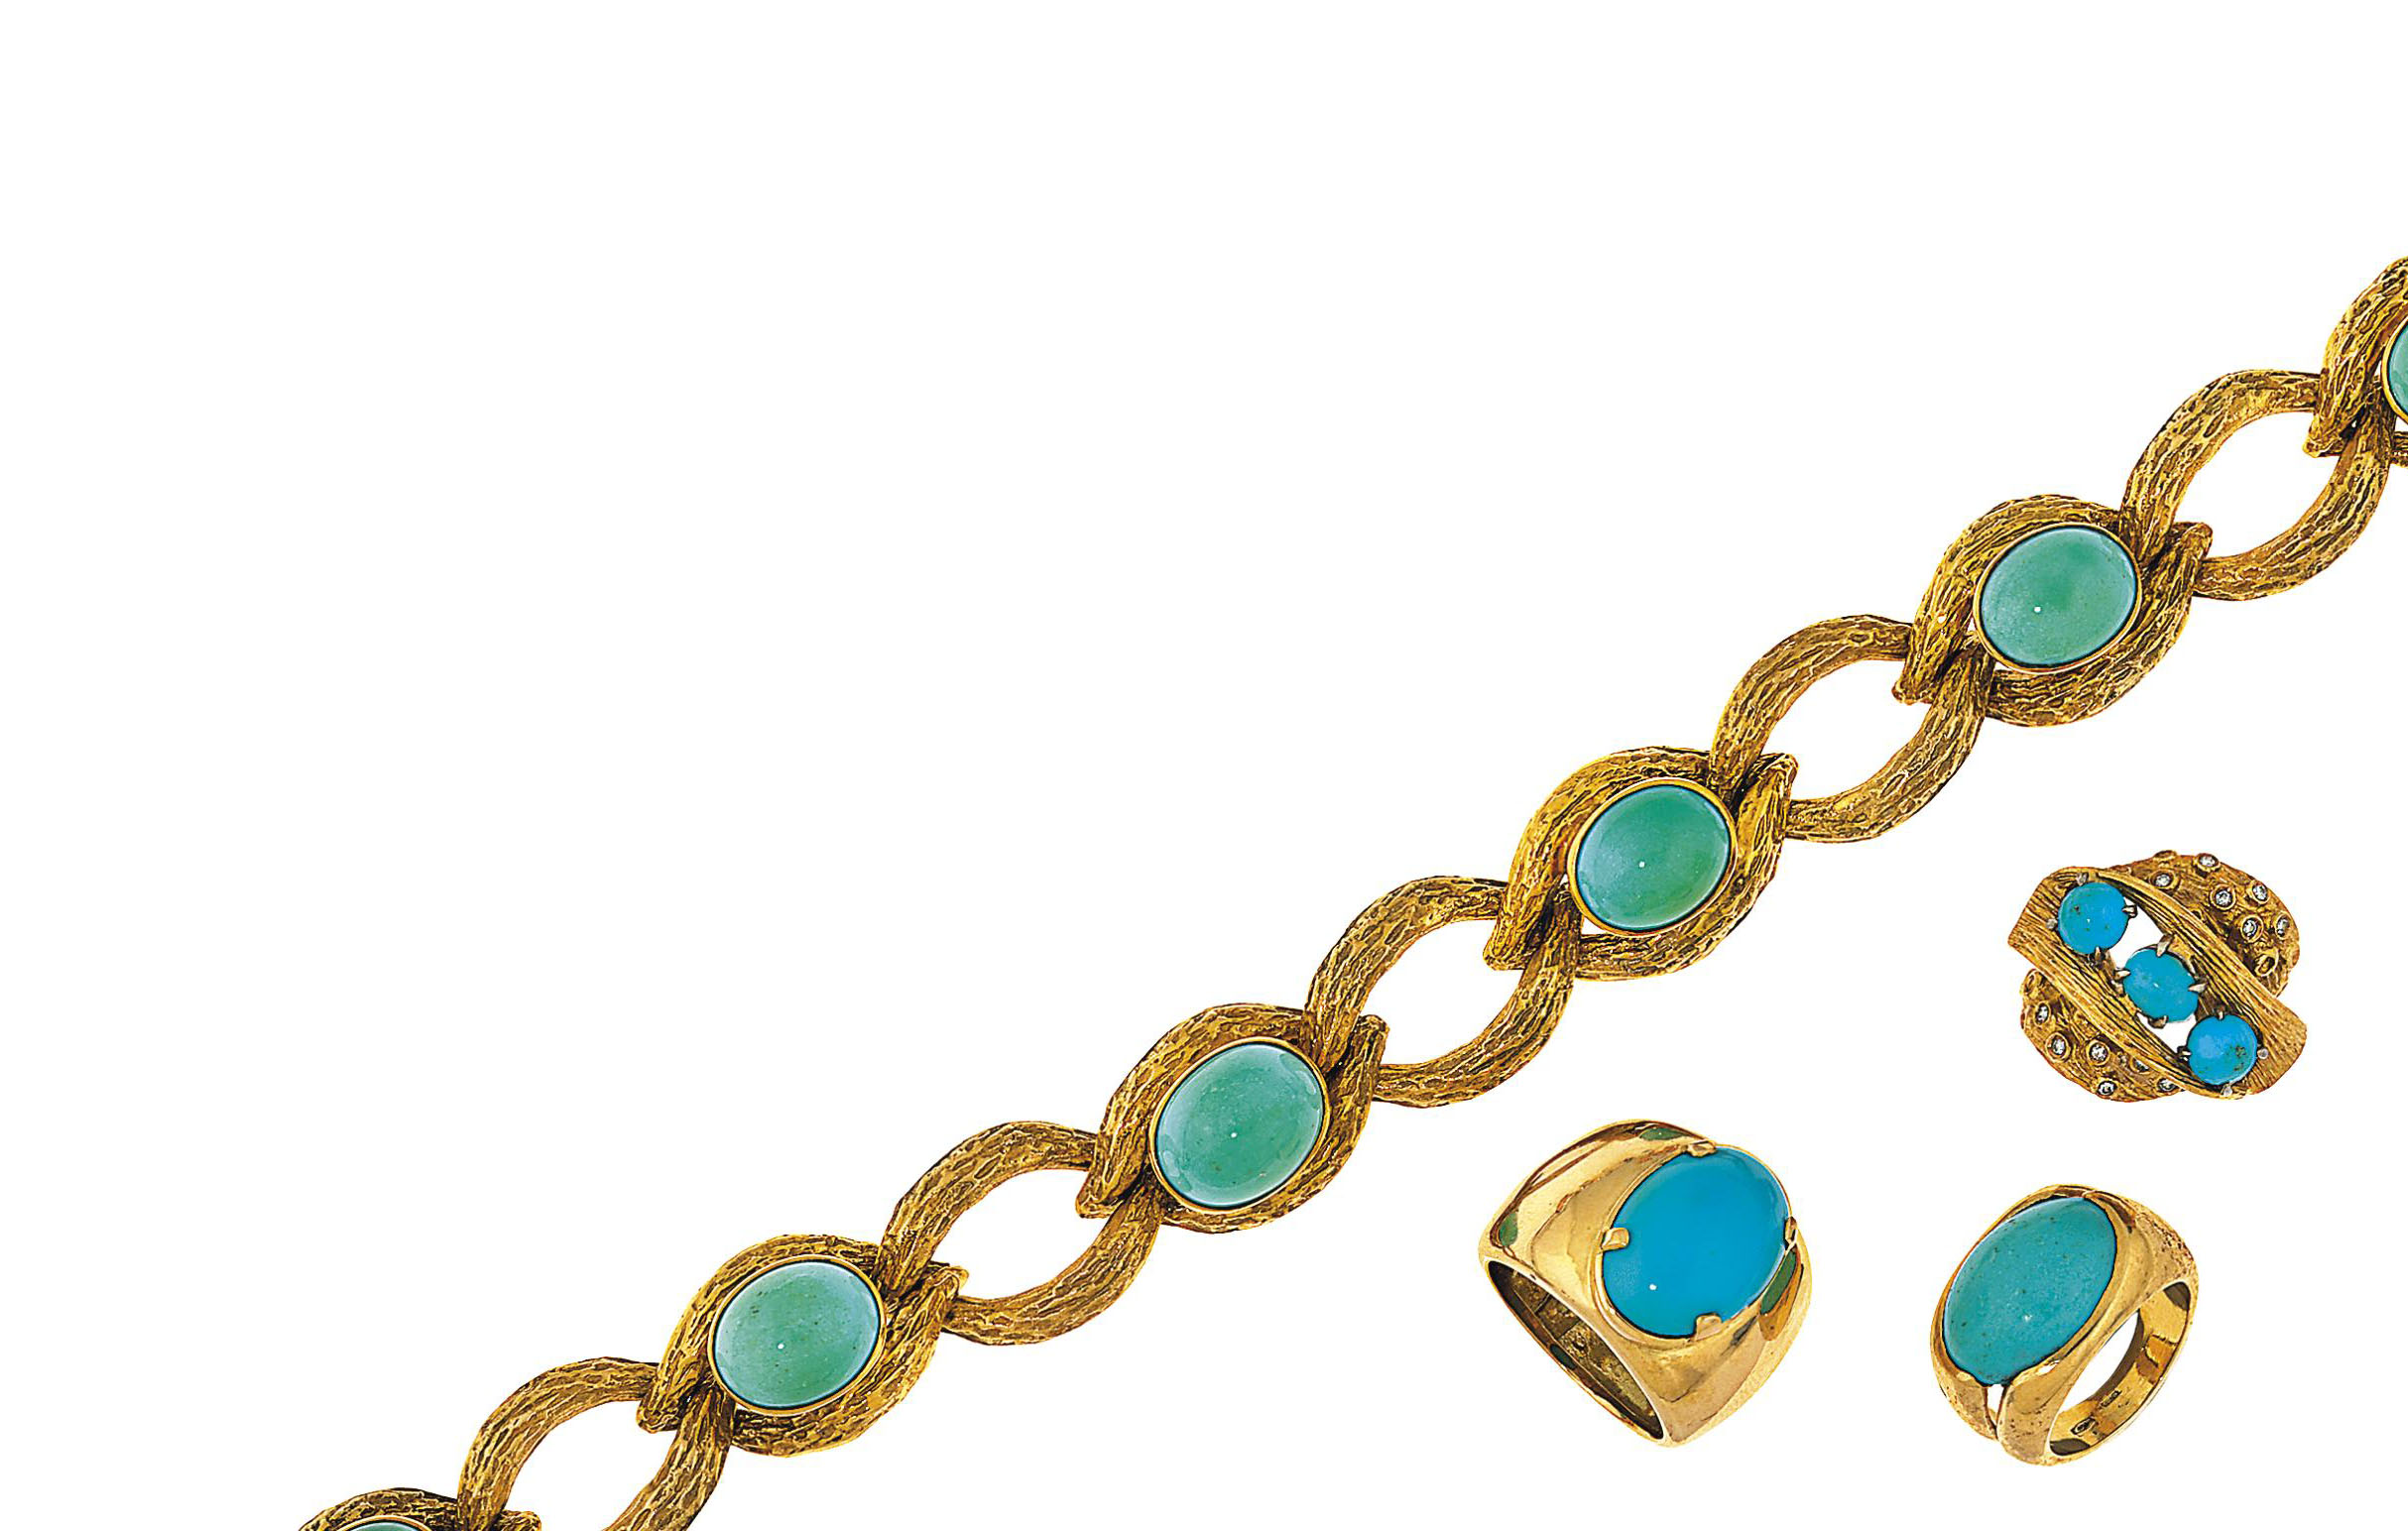 A group of turquoise jewellery